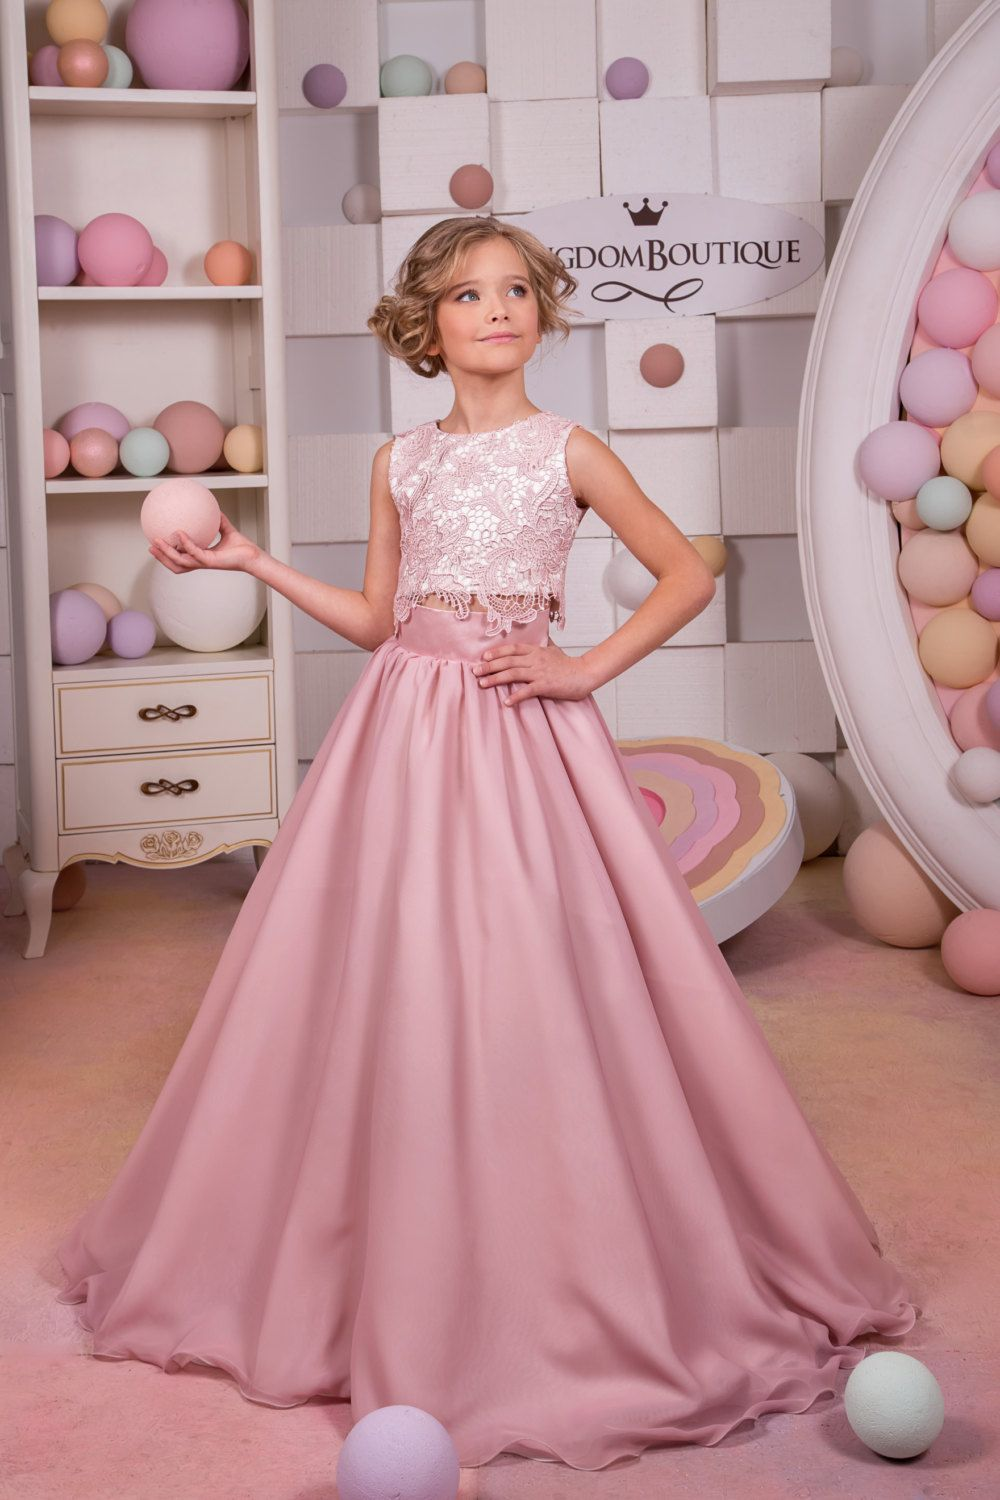 Blush Pink Lace Satin Flower Girl Dress Wedding Party | little ...